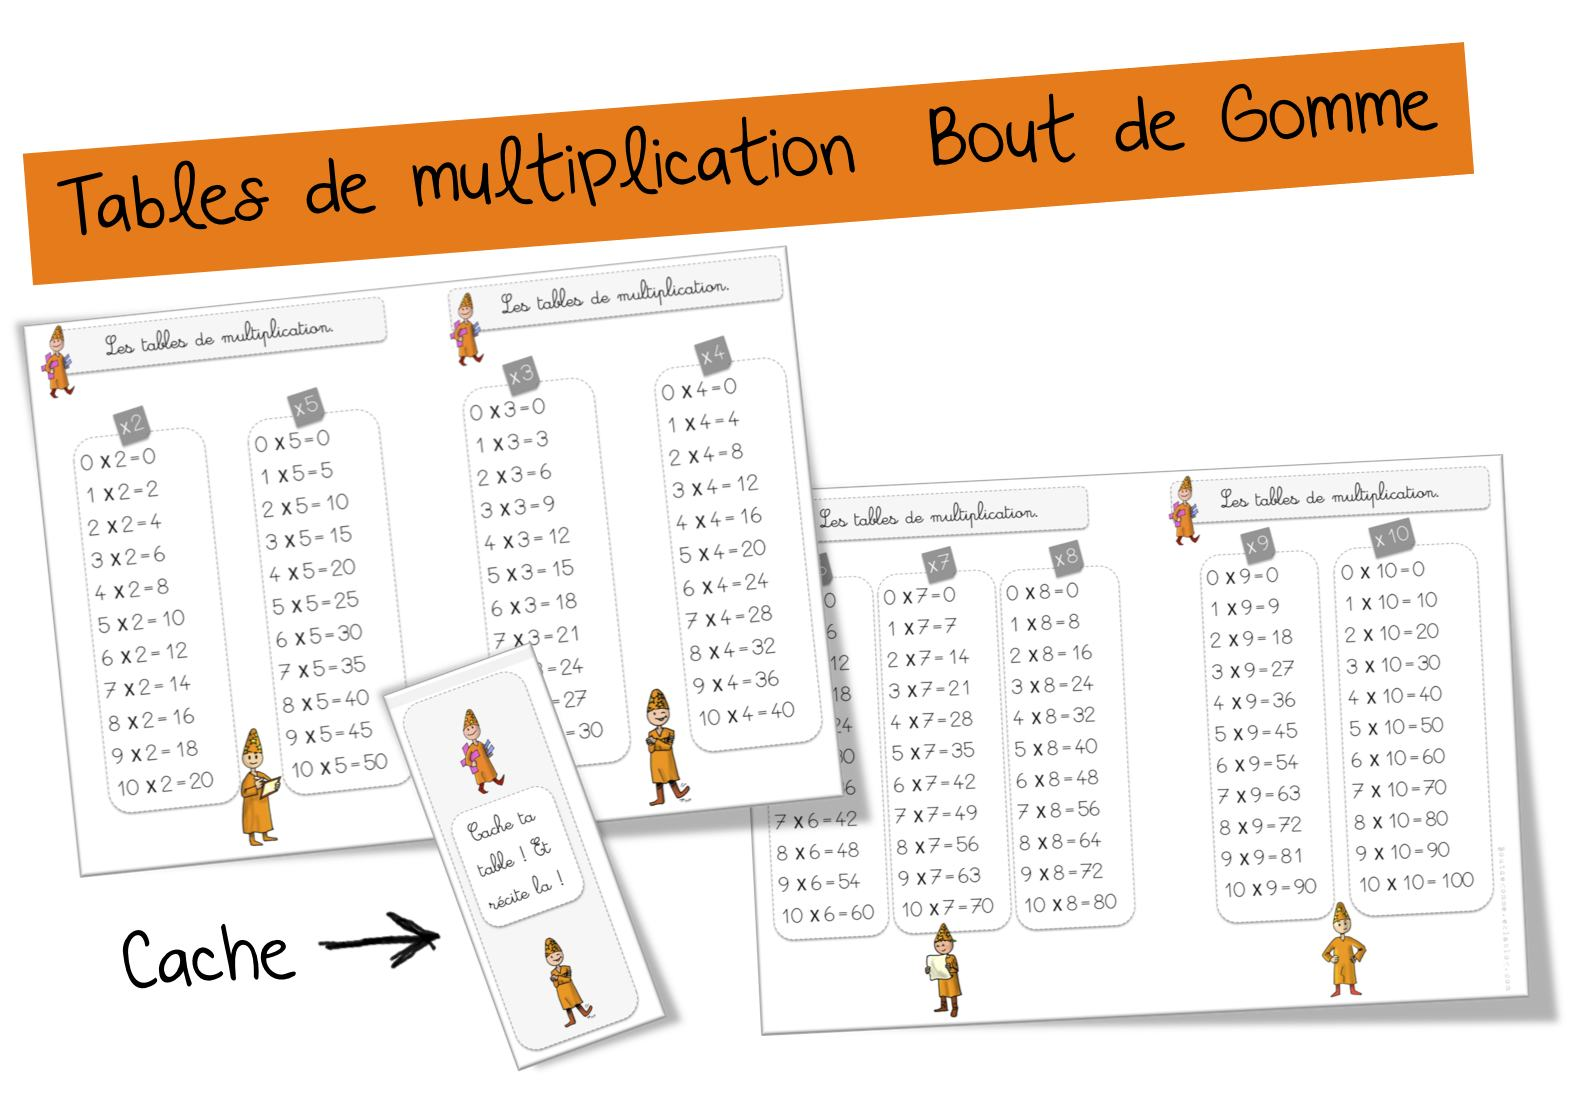 Exercice table multiplication 3 4 5 fiches d exercices - Reviser les tables de multiplication ce2 ...